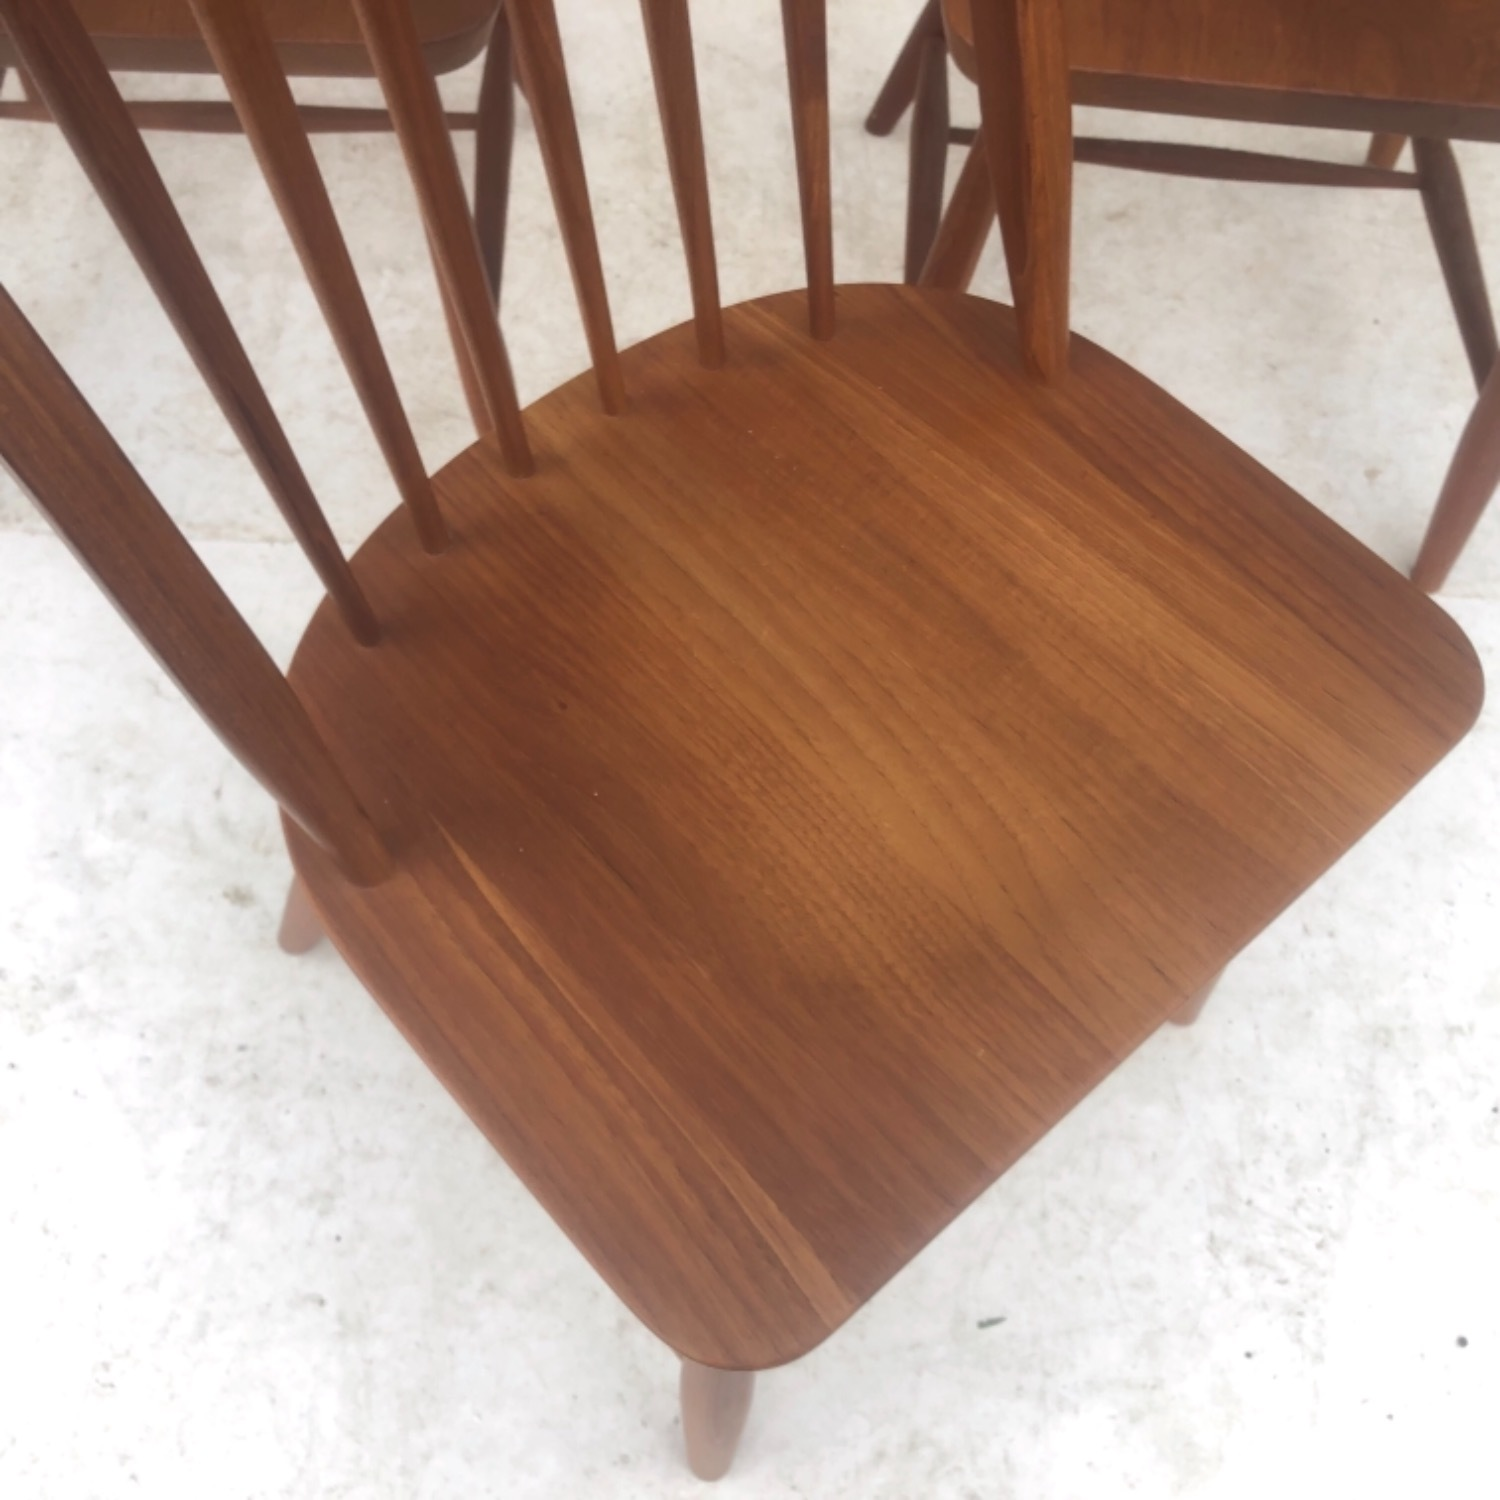 Vintage Modern Dining Set w/ Six Chairs - image-14